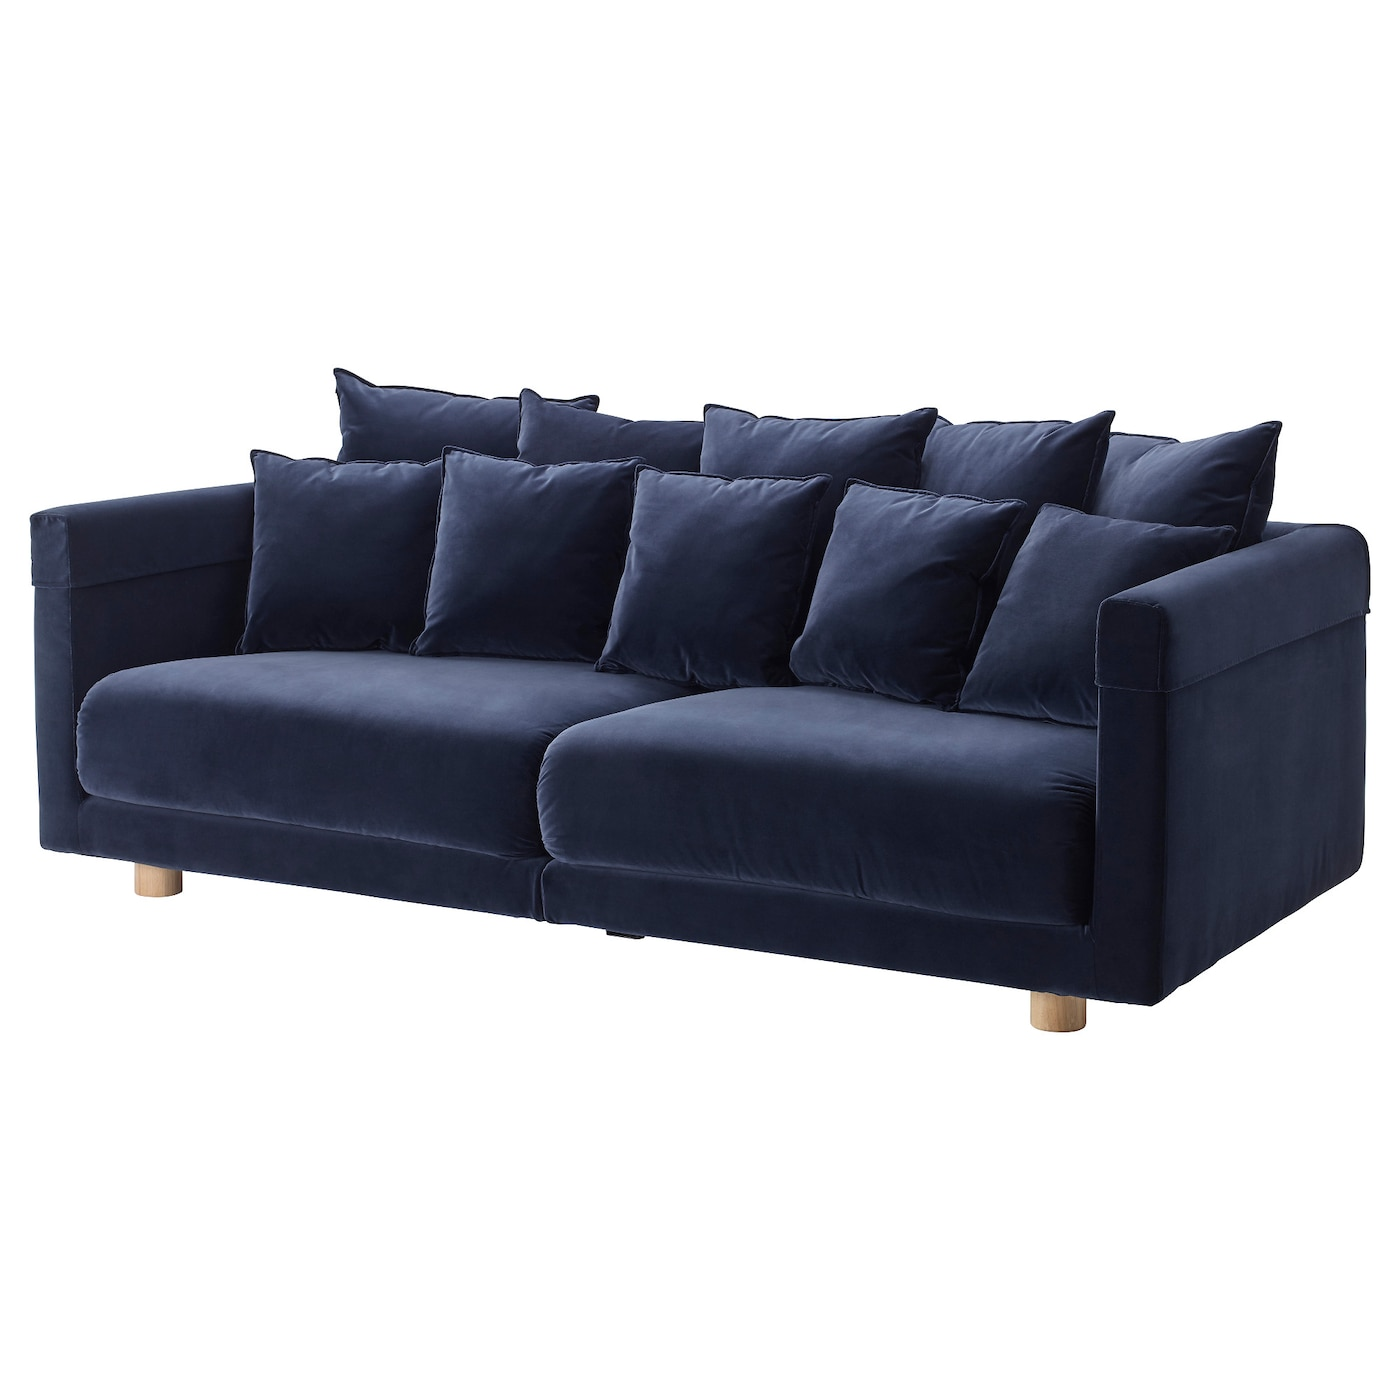 Stockholm 2017 three seat sofa sandbacka dark blue ikea - Divani ikea 2017 ...